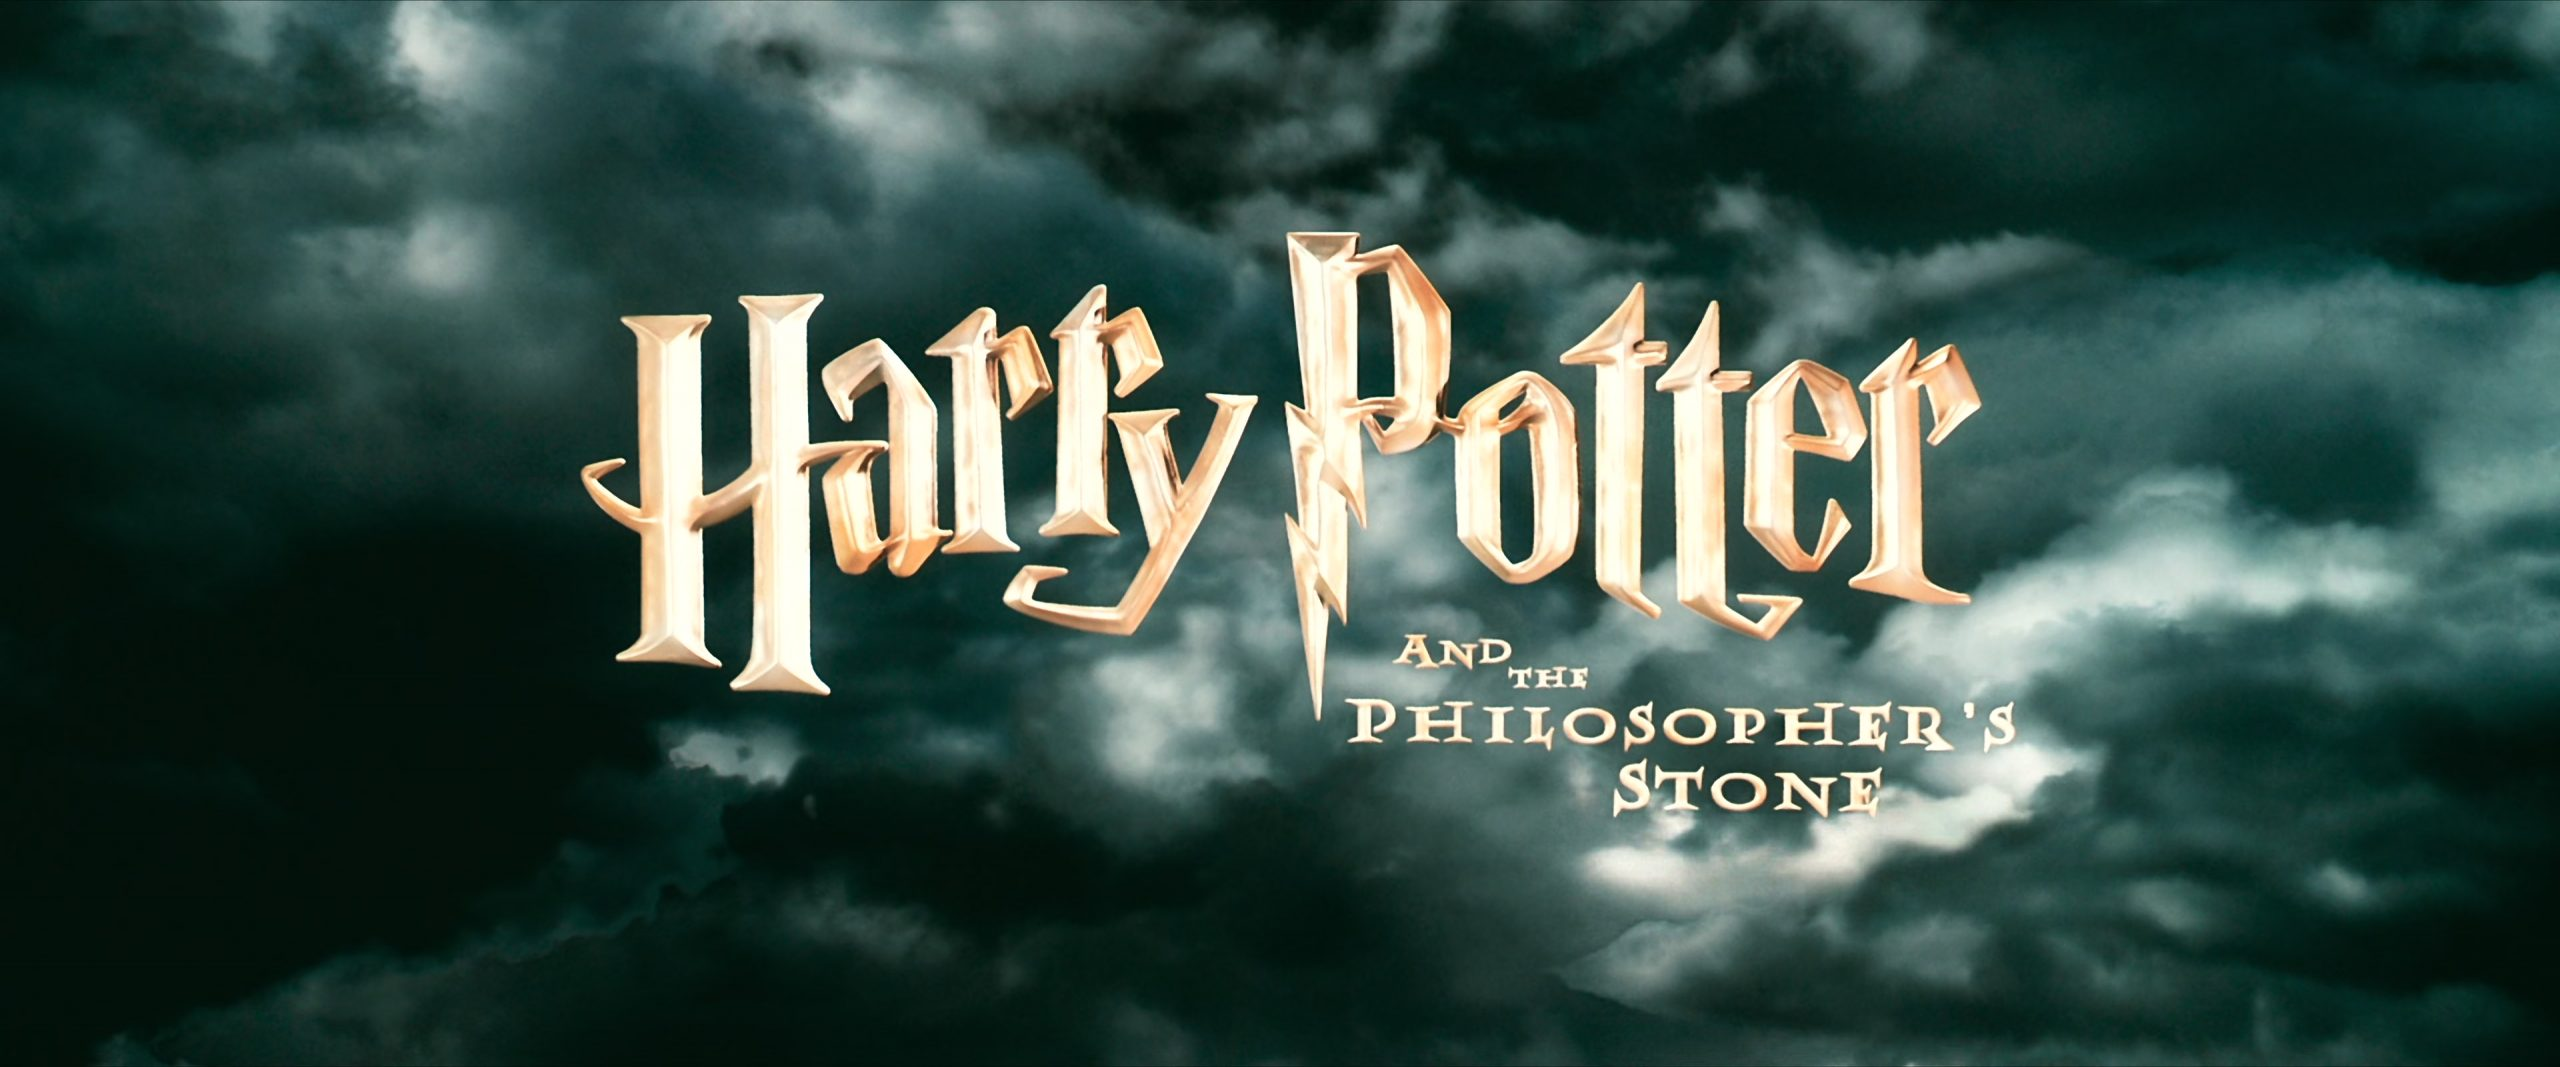 Harry Potter and the Philosopher's Stone (2001) [4K]